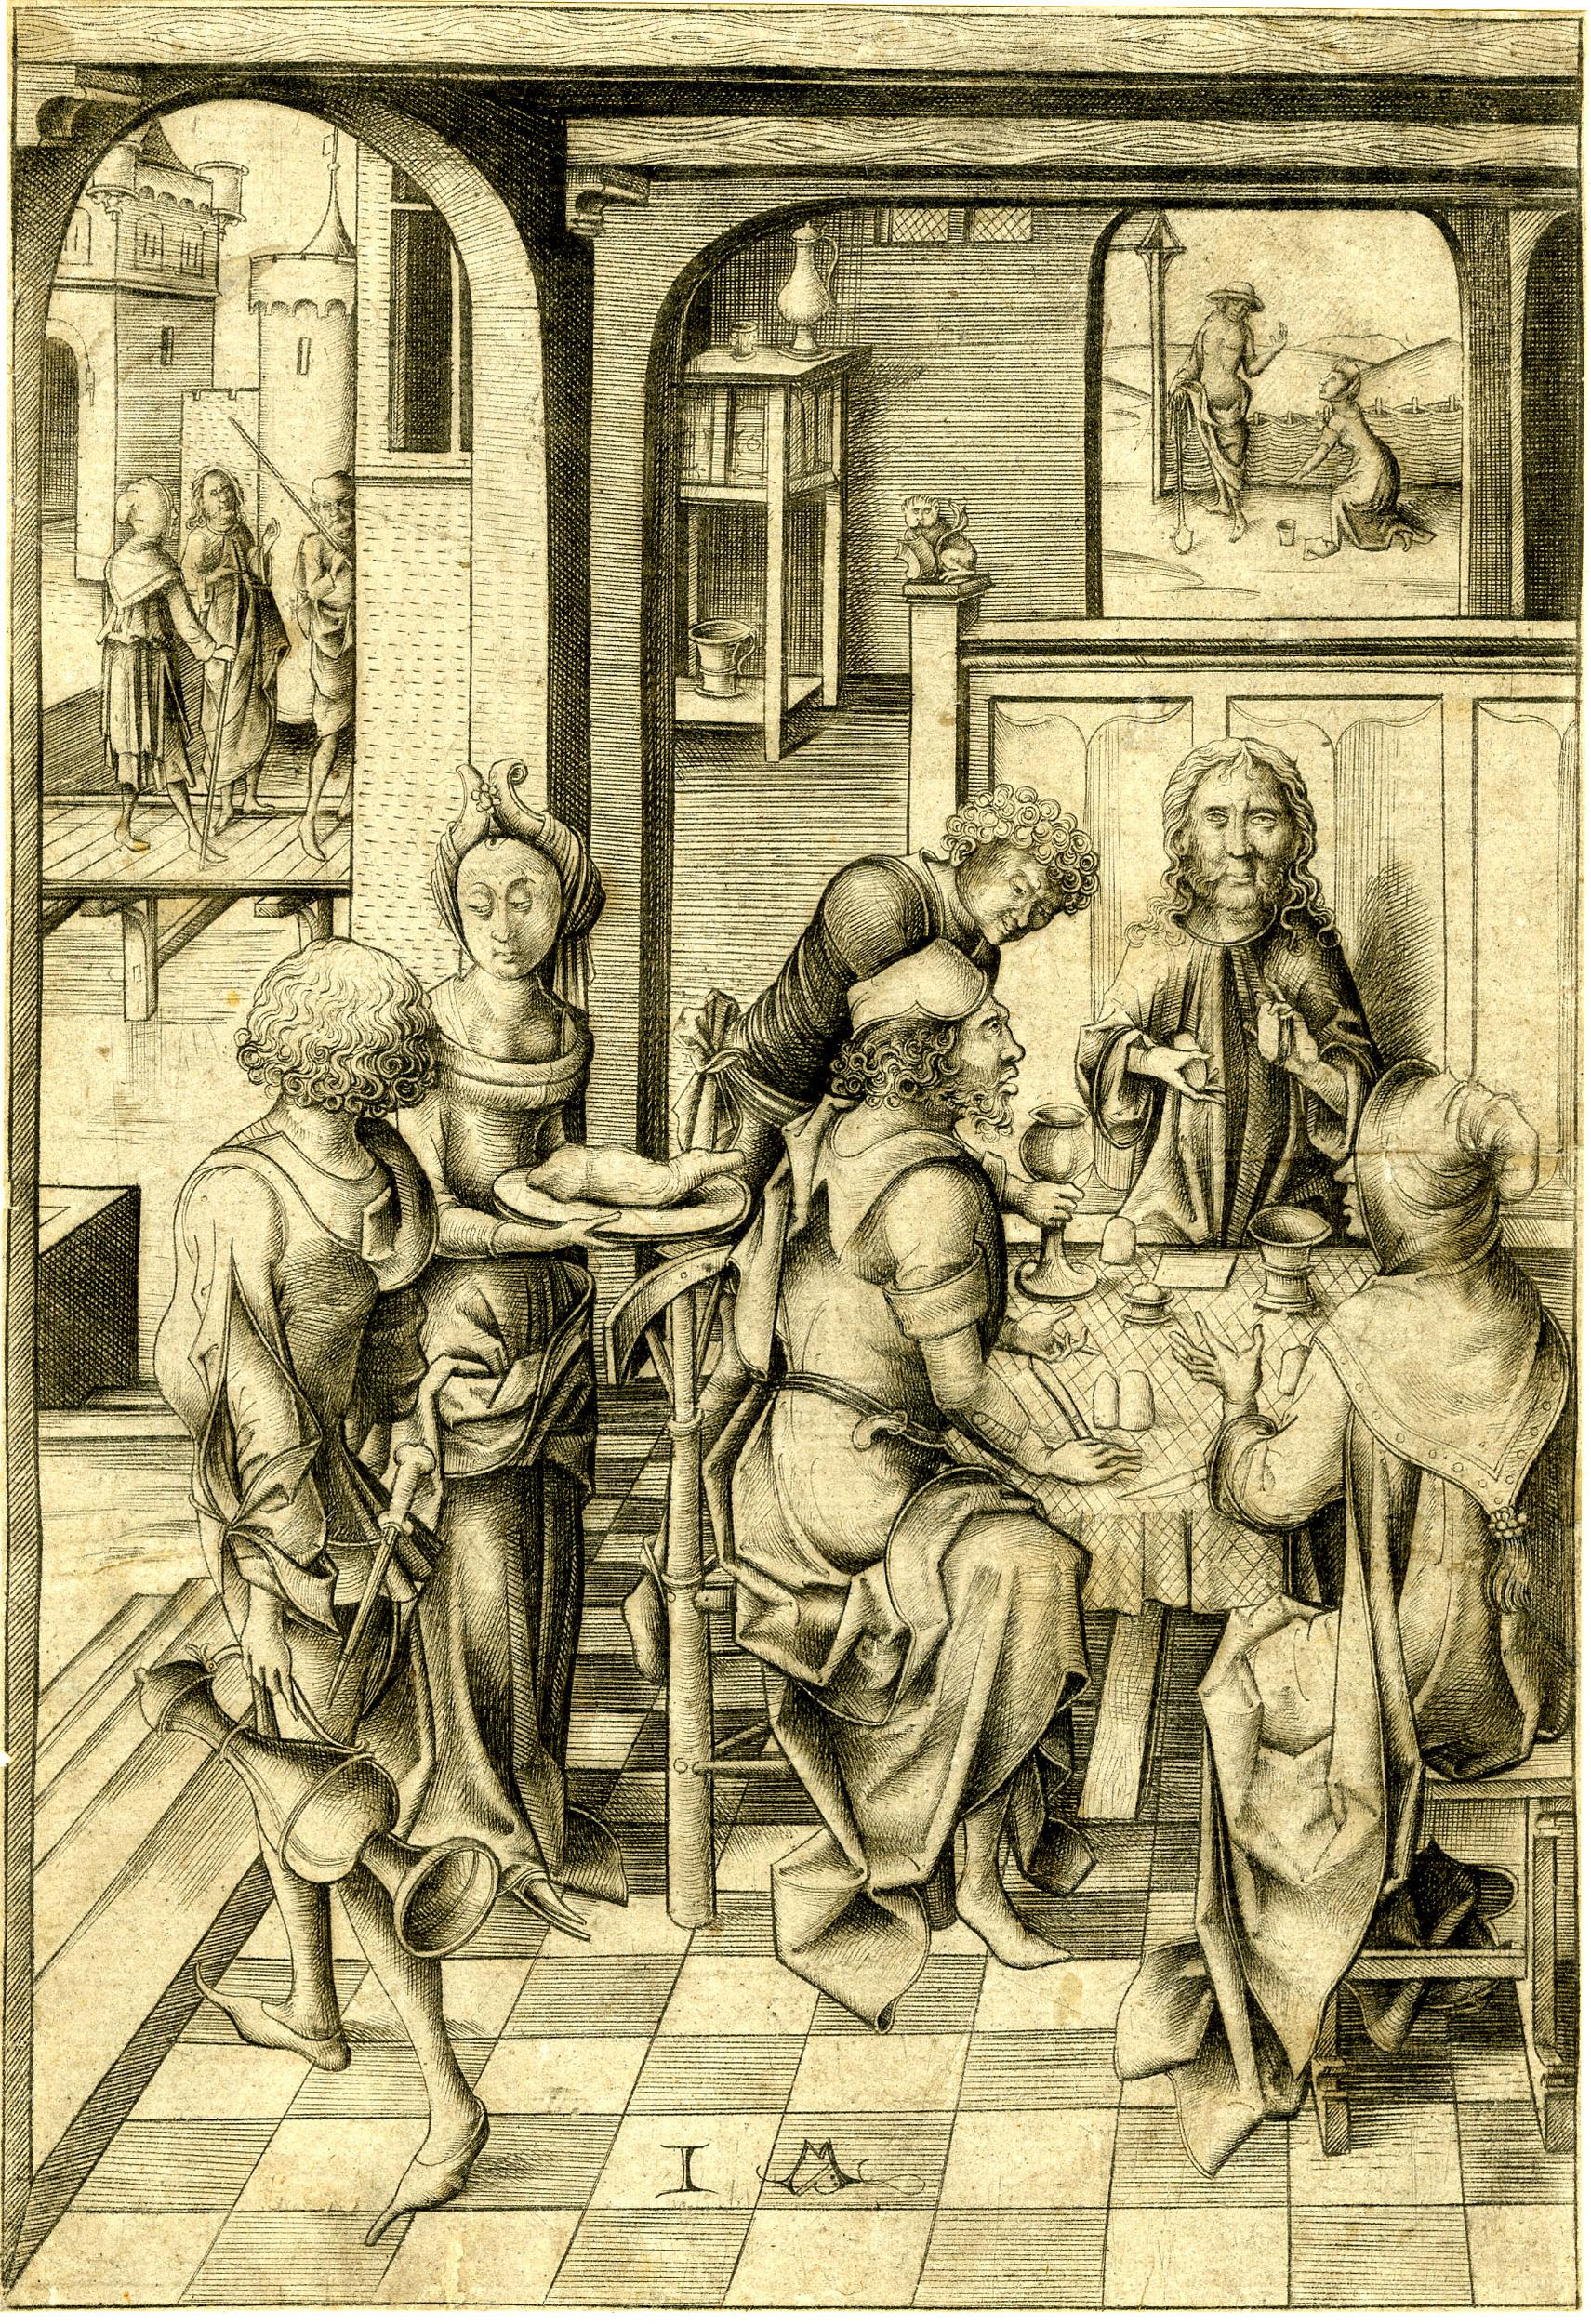 Christ and the two disciples are seated at the table. Three other figures are present, including a woman who appears to be serving food. In the left background the portrayal of the journey to Emmaus and to the right, Christ's appearance to St Mary Magdalene.